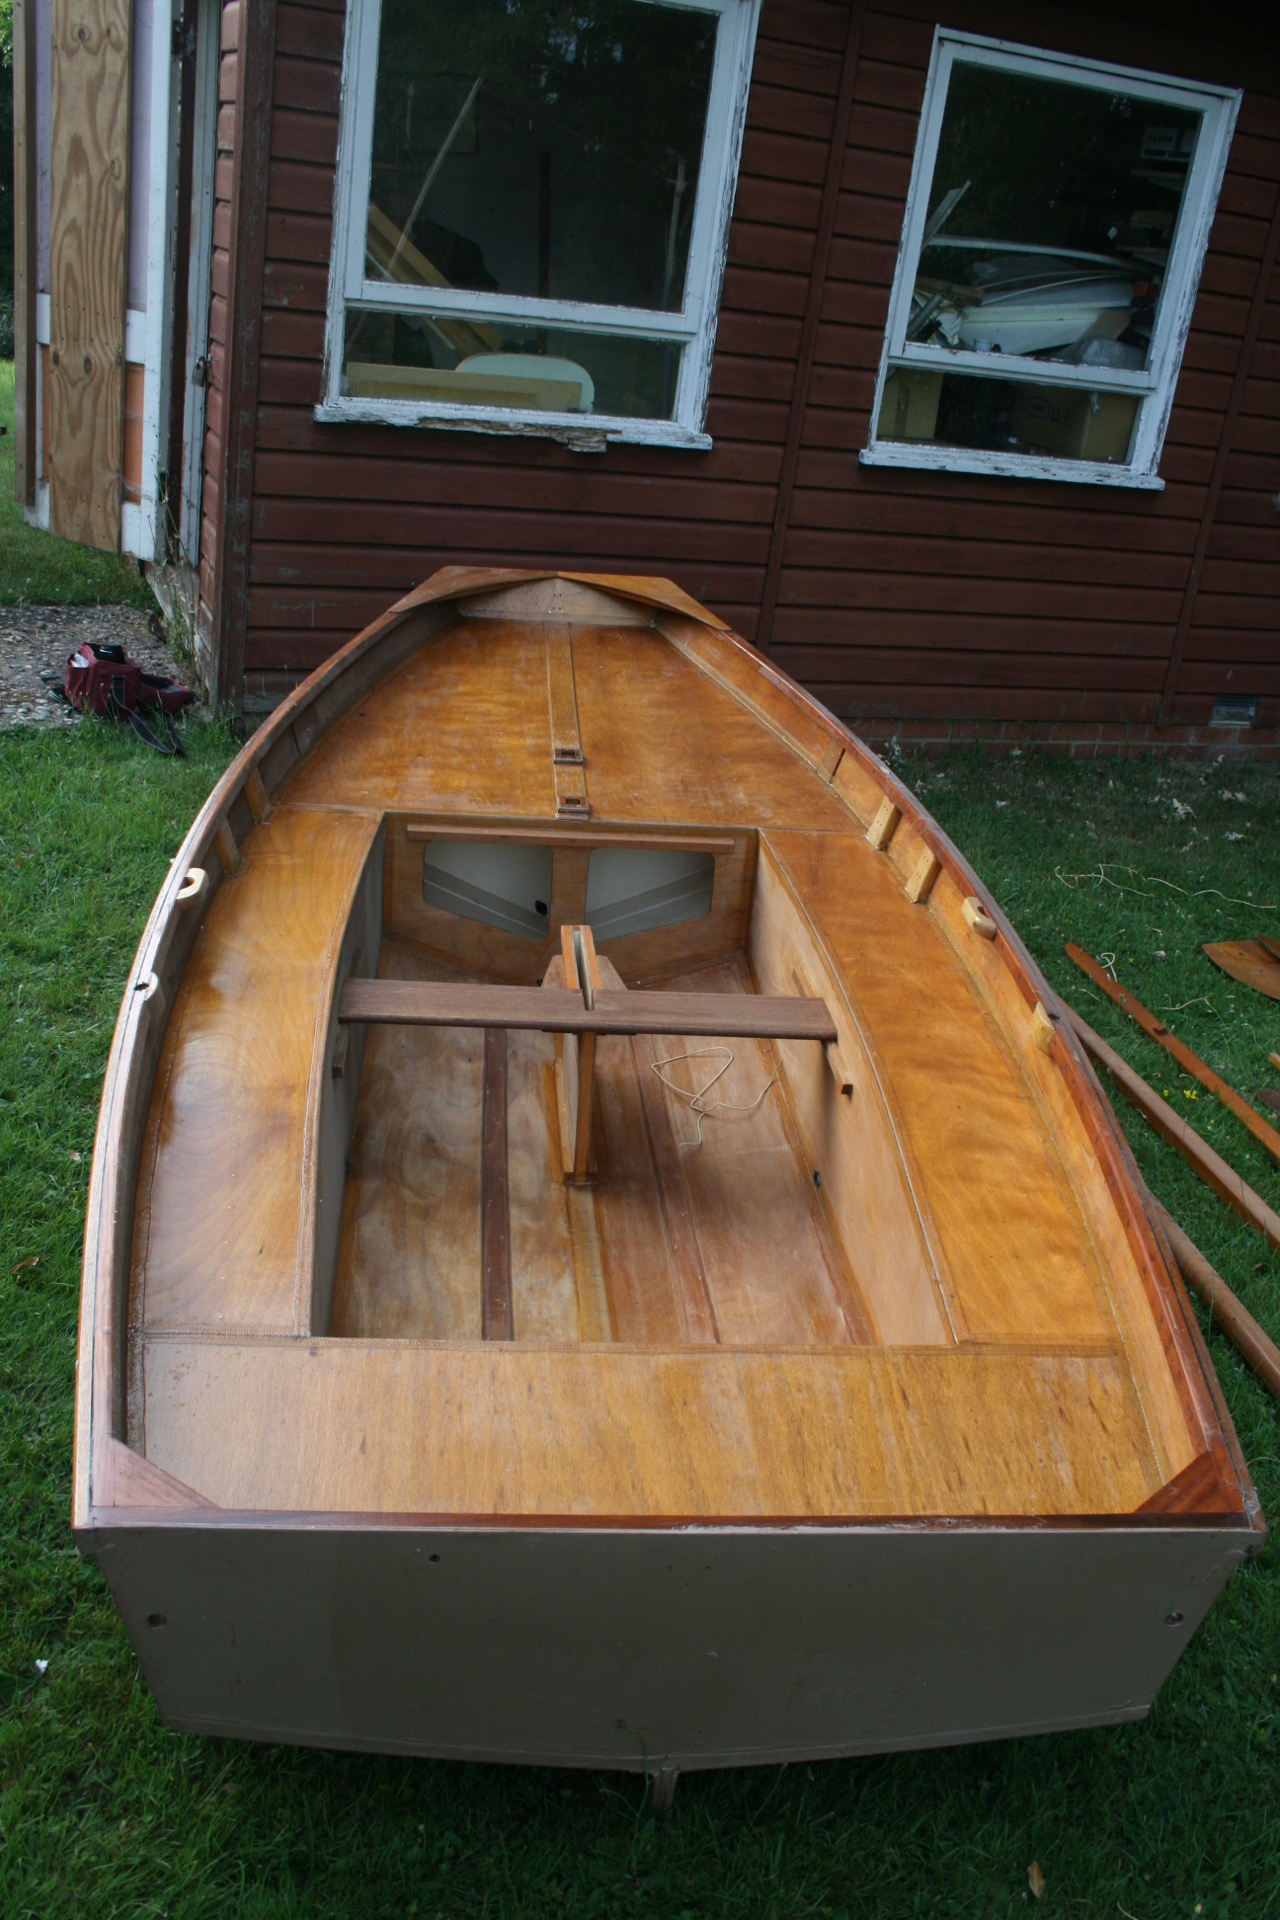 A wooden Mirror dinghy hull which has been completed and some varnish applied, but no fittings, on a lawn